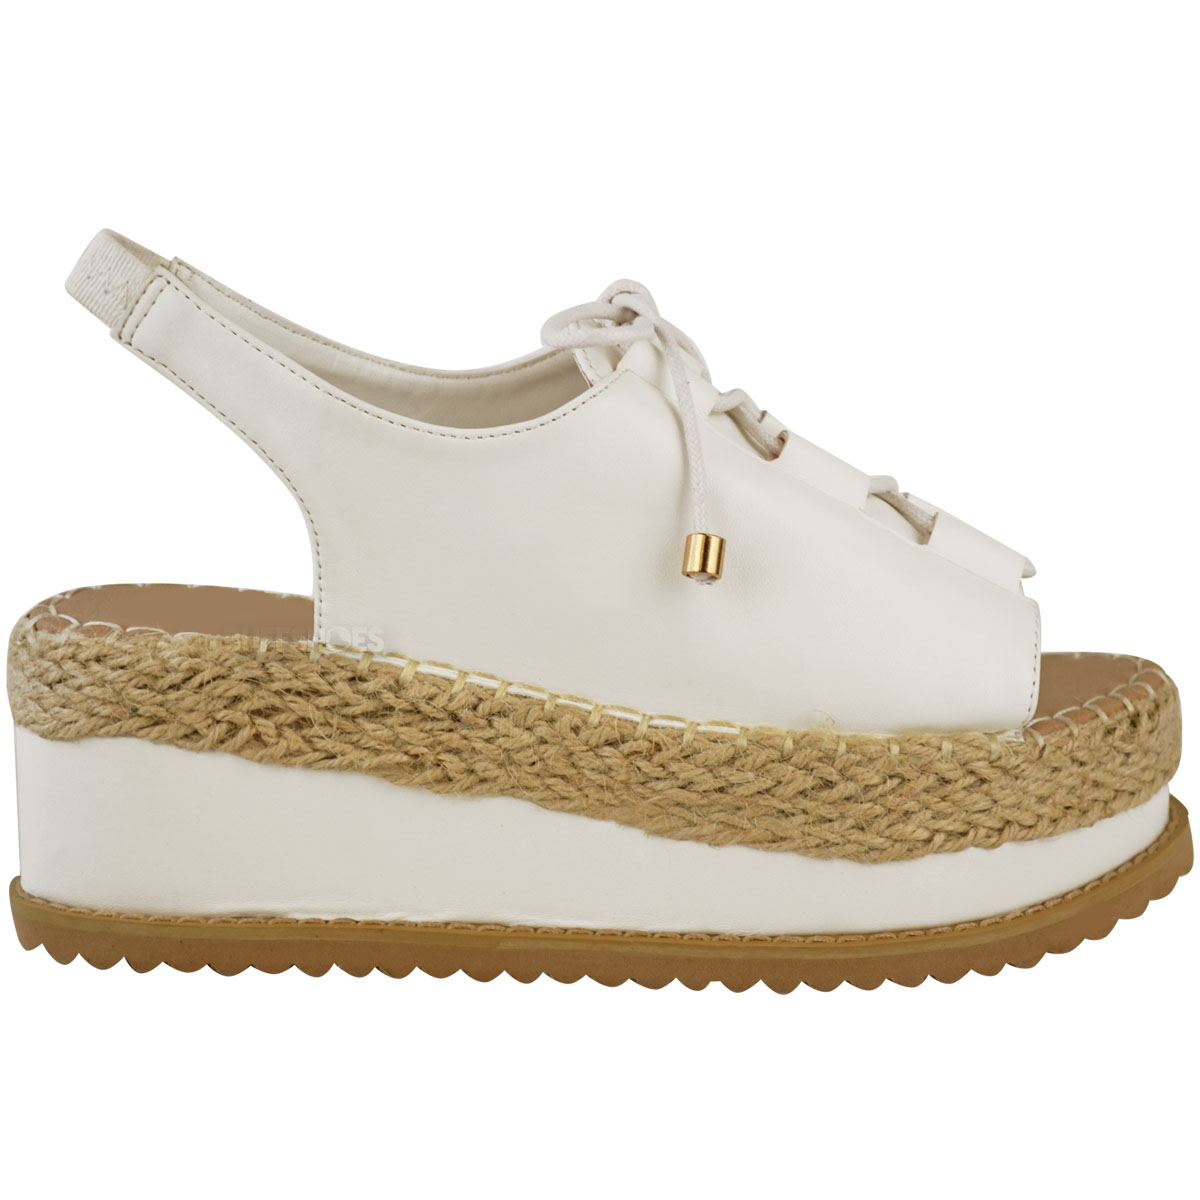 womens espadrille flatforms wedge sandals lace up